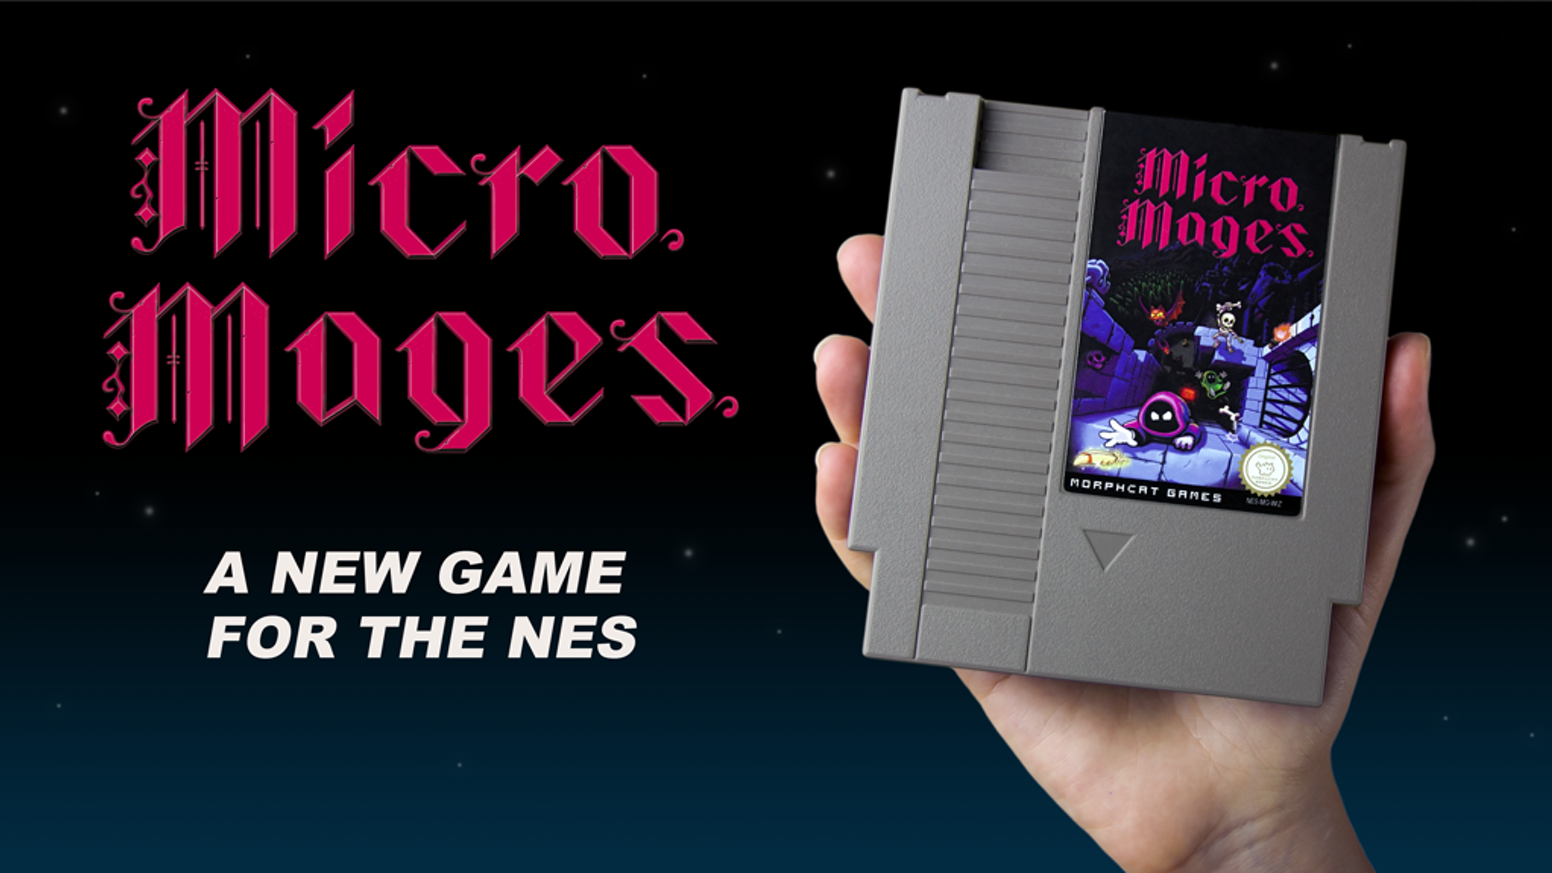 Micro Mages is a platform game for 1-4 players. Available on a real NES cartridge and many other platforms via emulation.